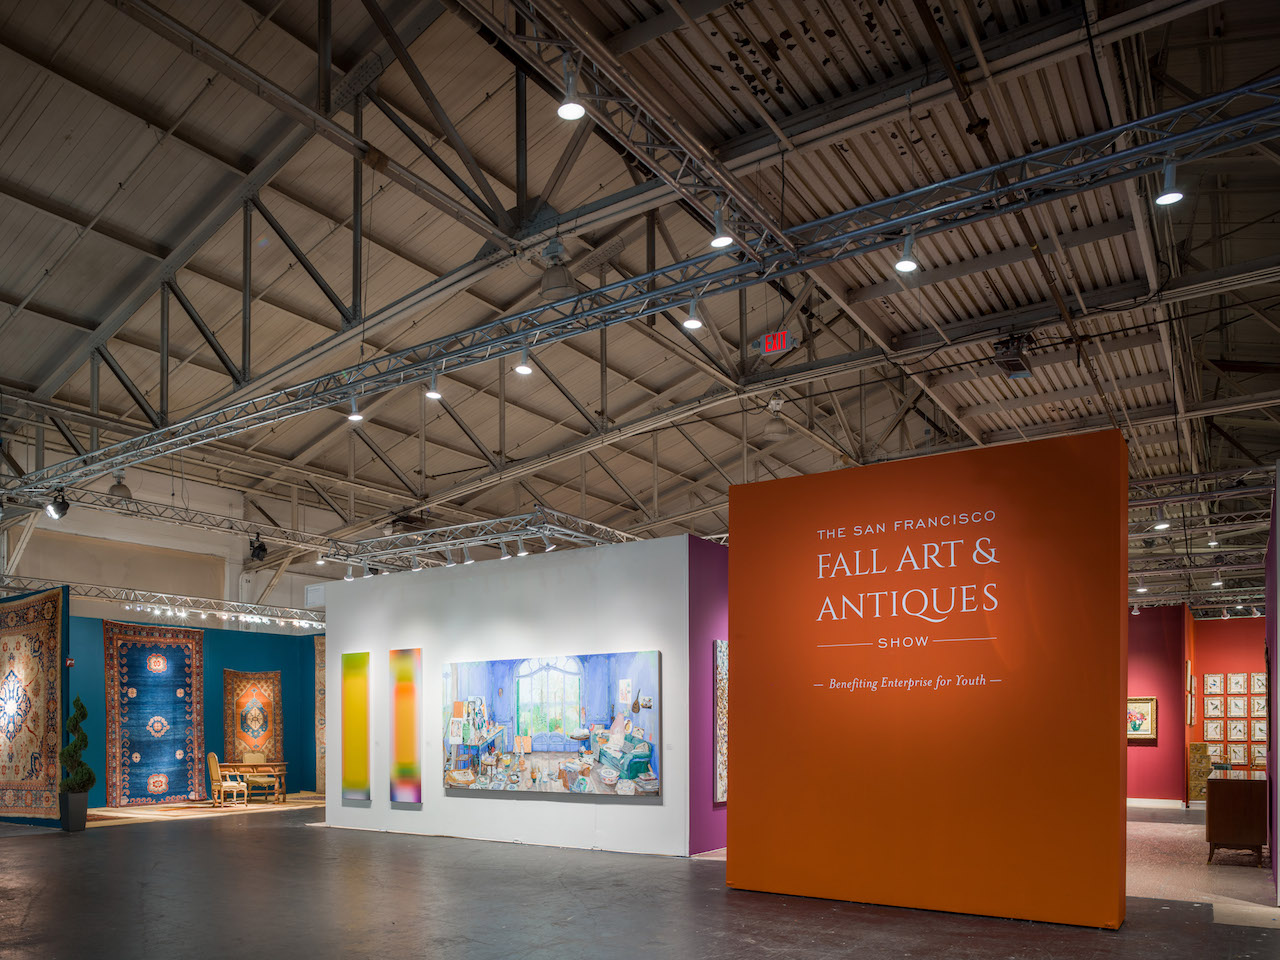 The entrance to last year's San Francisco Fall Art & Antiques Show